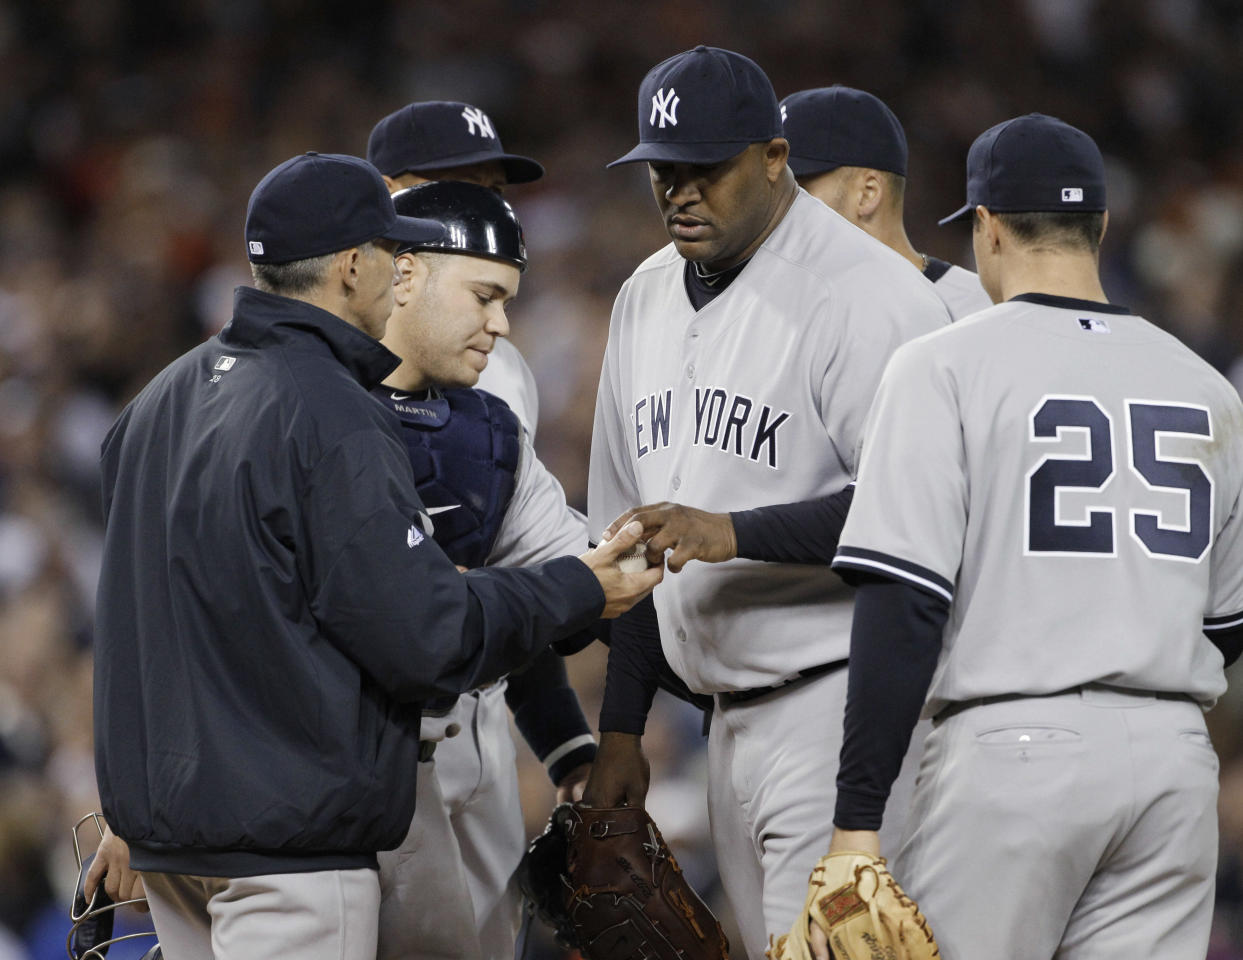 New York Yankees starting pitcher CC Sabathia walks off the mound after being replaced during the sixth inning of Game 3 of baseball's American League division series on Monday, Oct. 3, 2011, in Detroit. At left is manager Joe Girardi. The Tigers defeated the New York Yankees 5-4. (AP Photo/Paul Sancya)